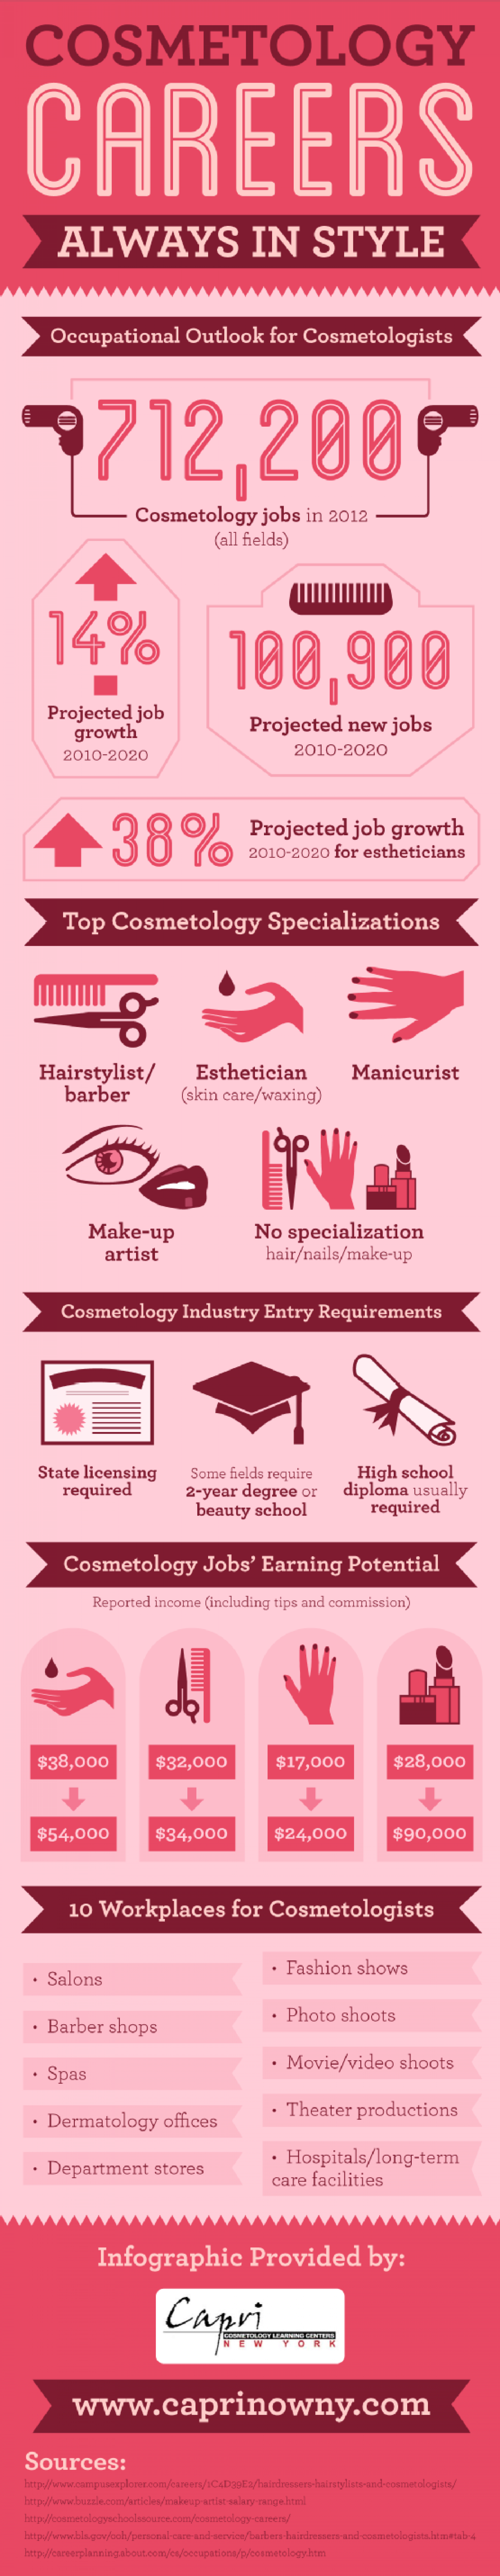 Cosmetology Careers: Always in Style Infographic